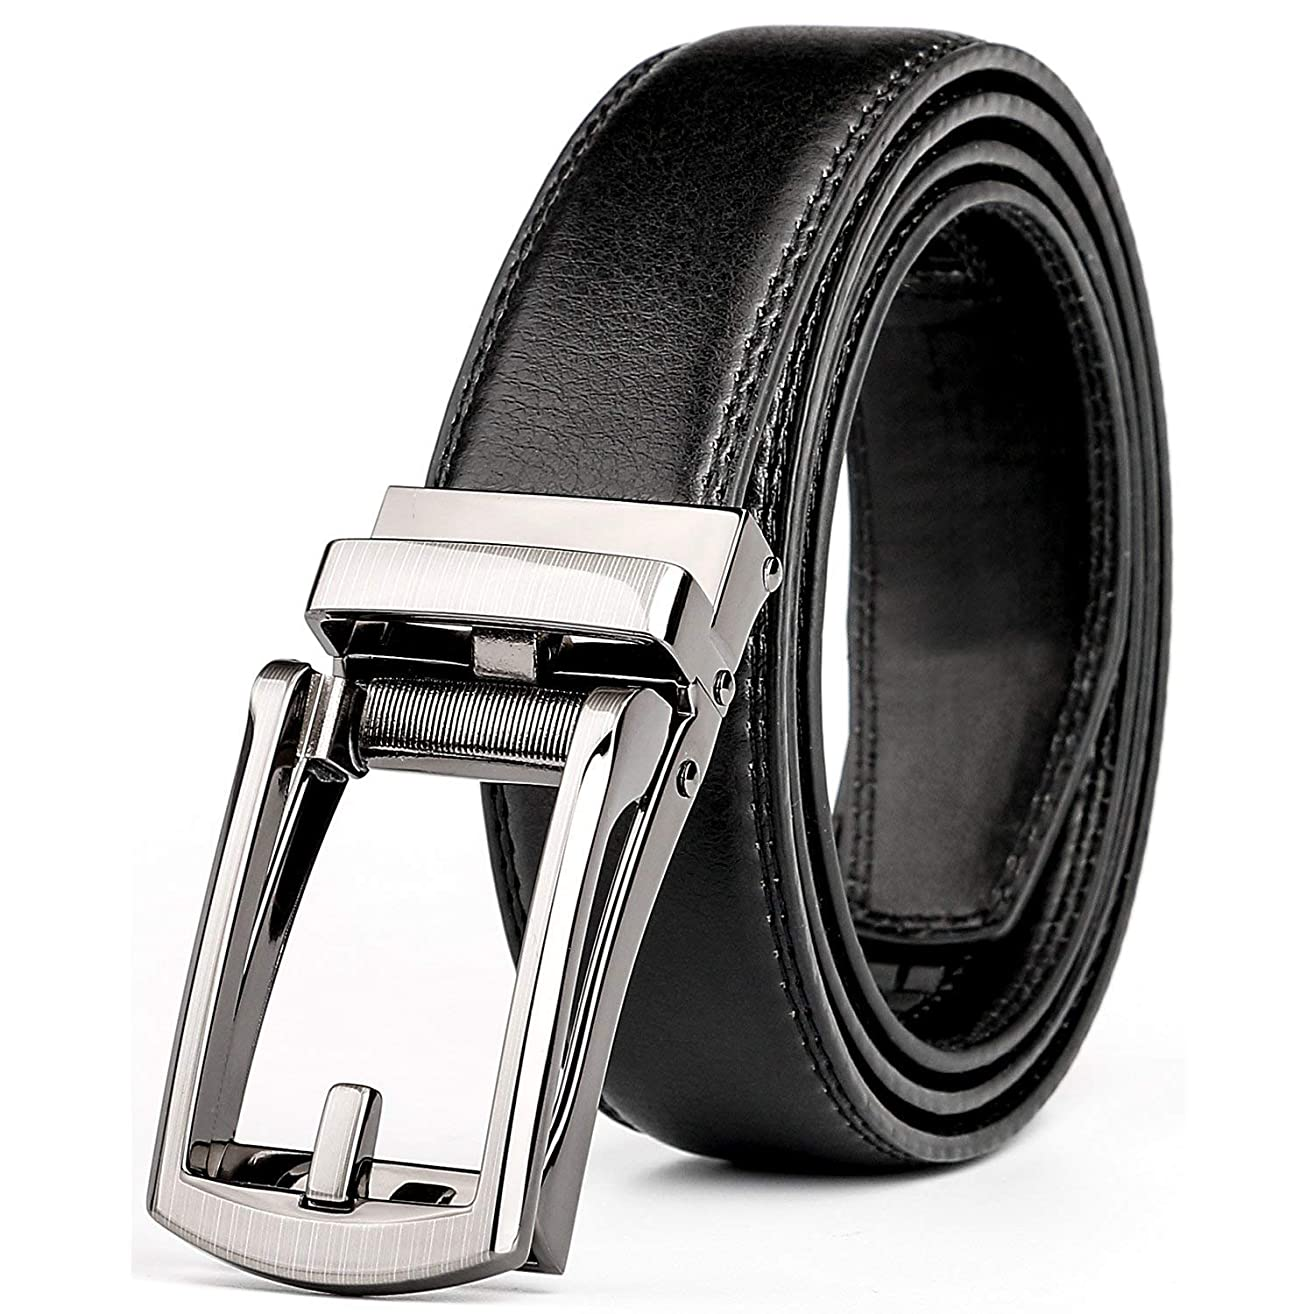 WERFORU Leather Ratchet Dress Belt for Men Perfect Fit Waist Size Up to 44inches with Automatic Buckle